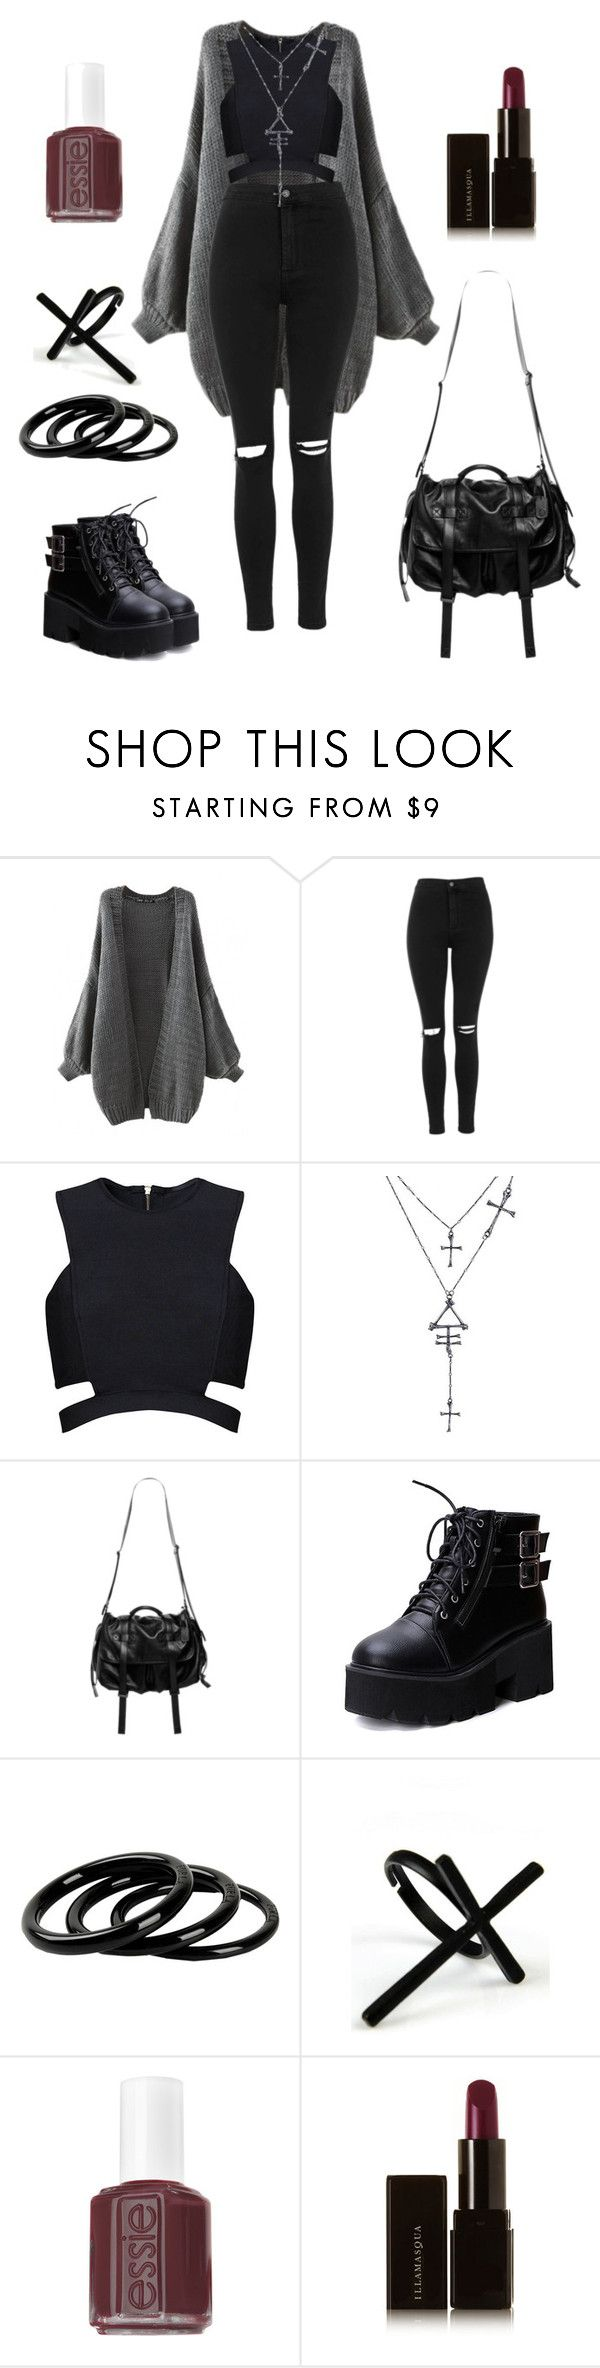 """""""Styling jeans"""" by shortcuttothestars ❤ liked on Polyvore featuring Topshop, Posh Girl, Natalia Brilli, Furla, Emi Jewellery, Essie and Illamasqua"""